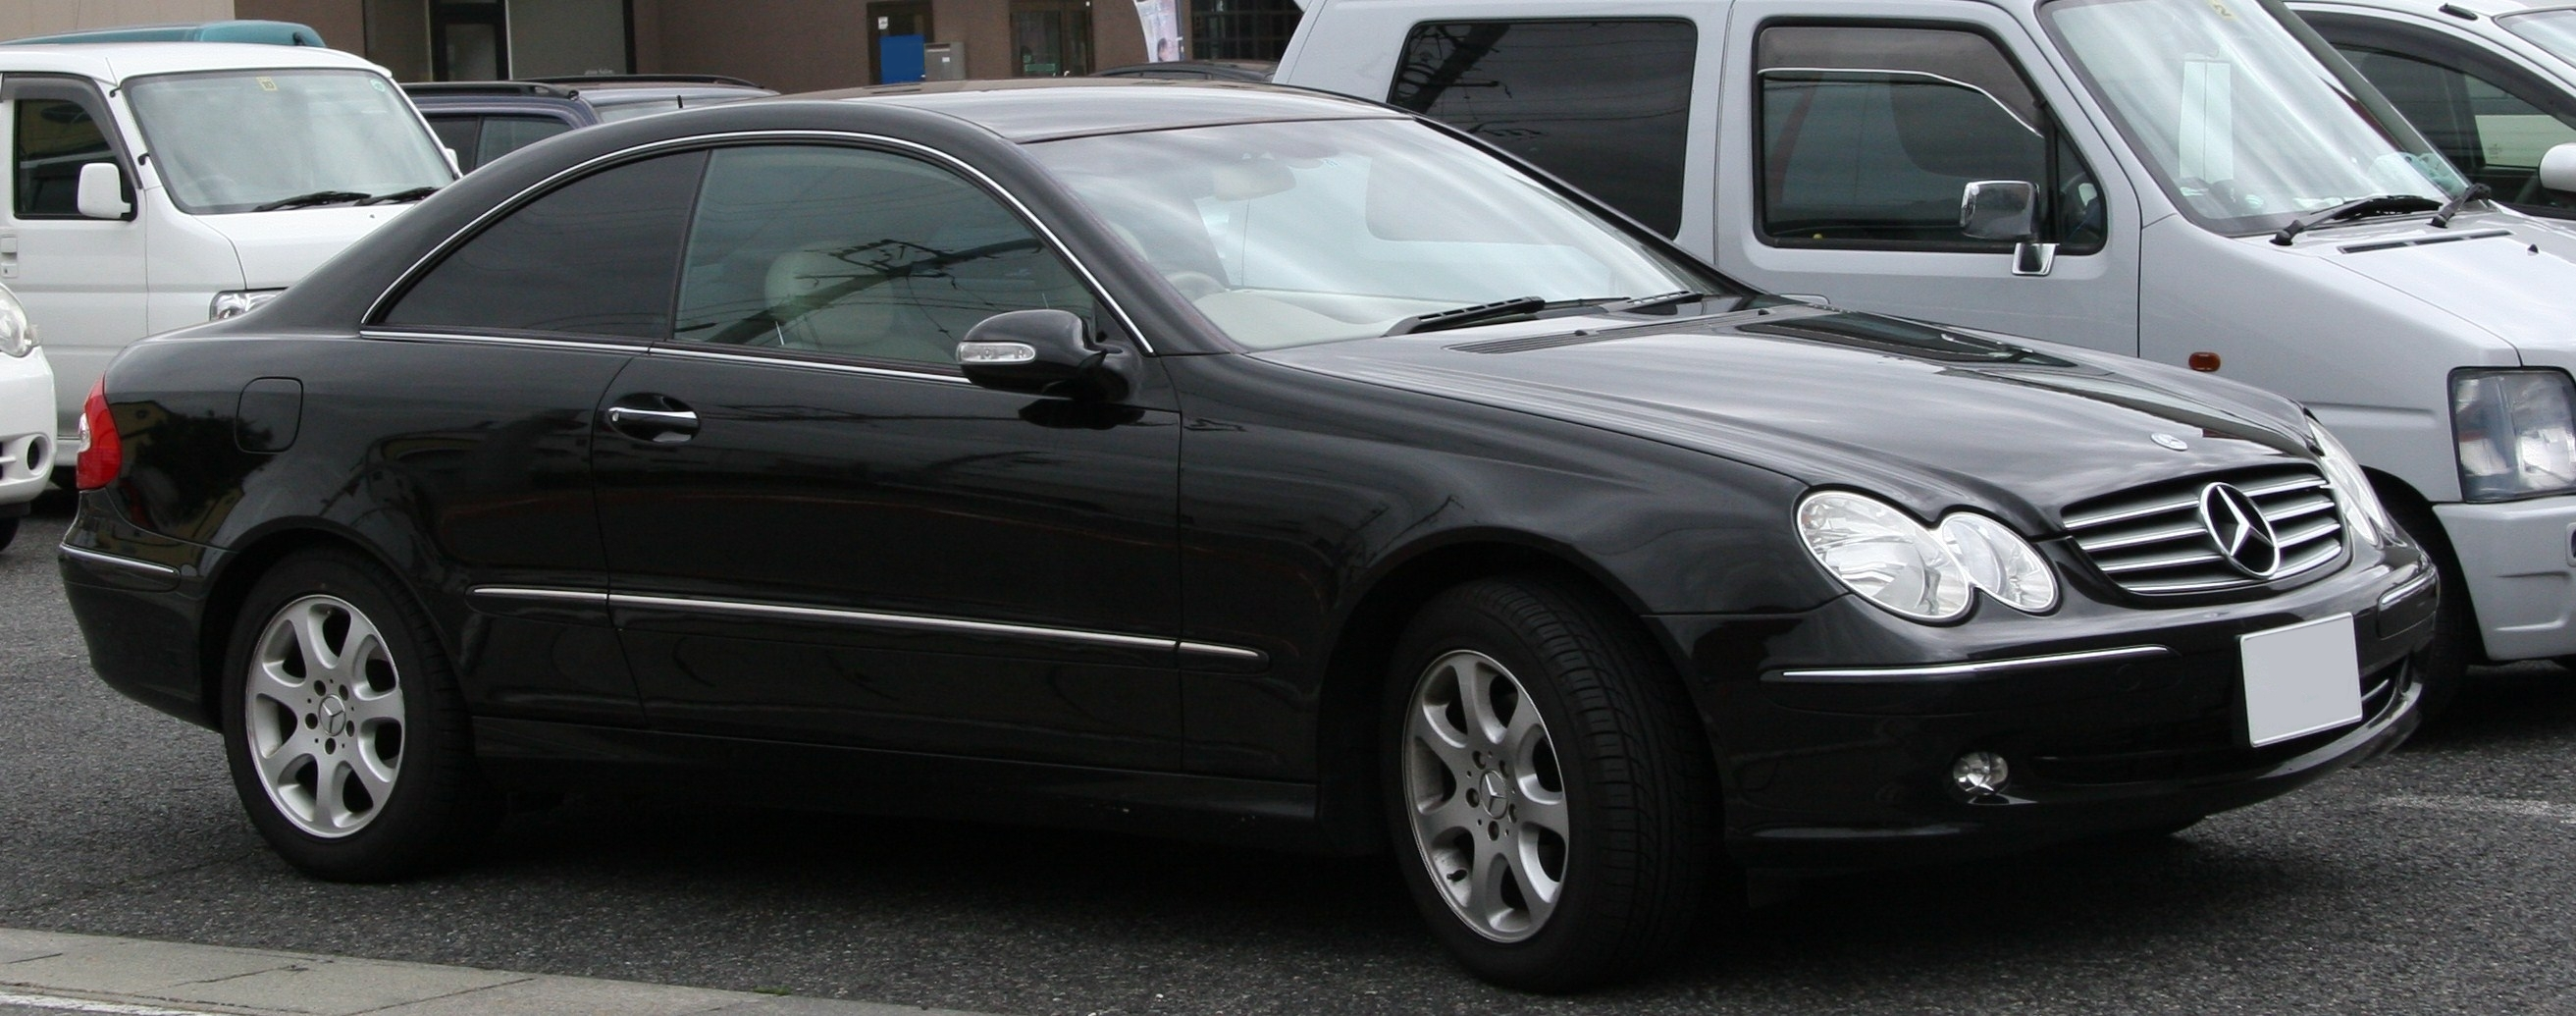 filemercedesbenz clk200 kompressorjpg wikimedia commons